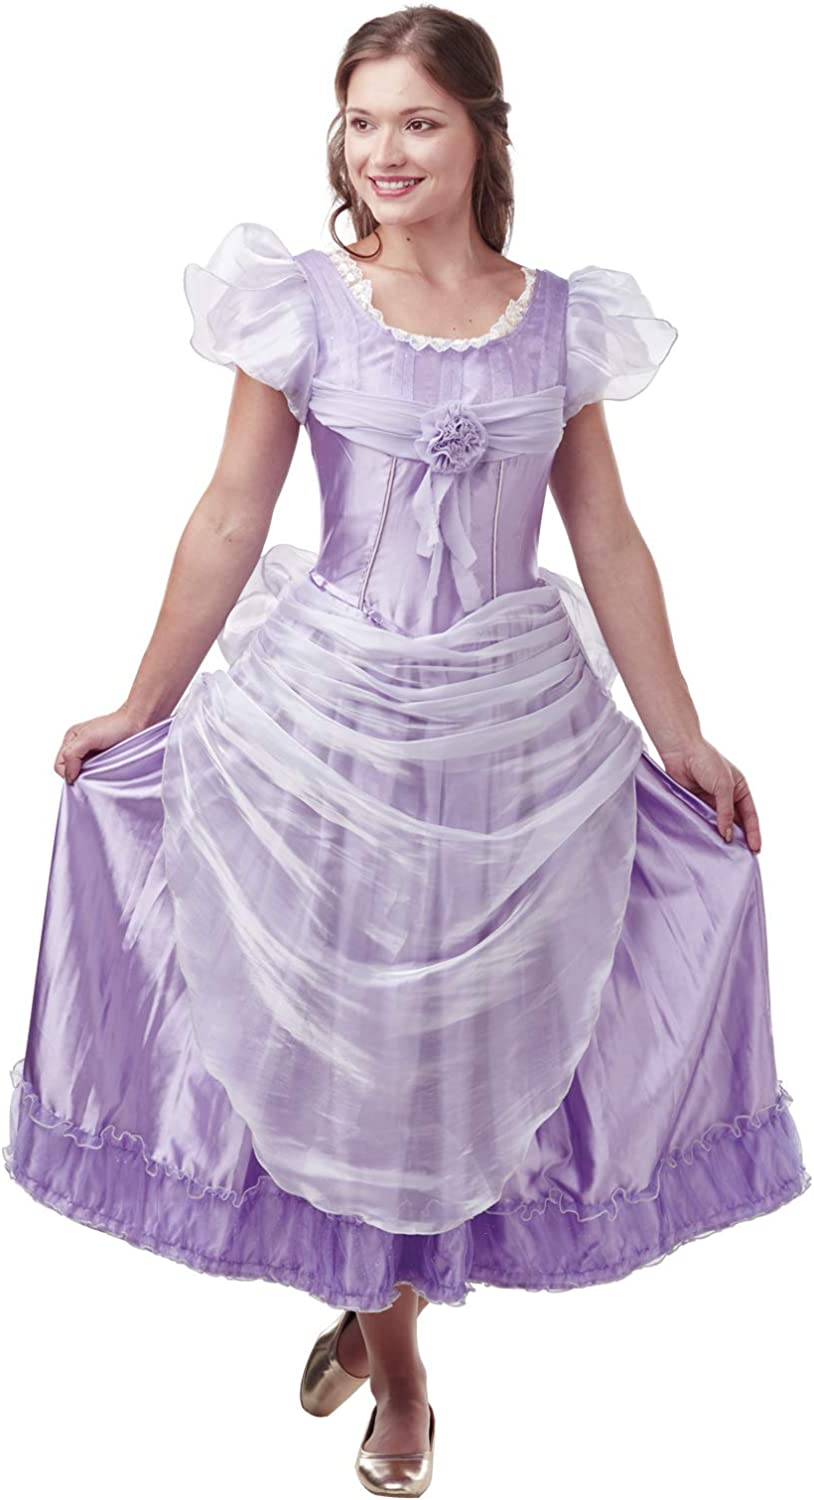 Victorian Kids Costumes & Shoes- Girls, Boys, Baby, Toddler Rubies Official Disney The Nutcracker Clara Lavender Deluxe Adult Ladies Costume UK Size Small 8-10 $88.06 AT vintagedancer.com